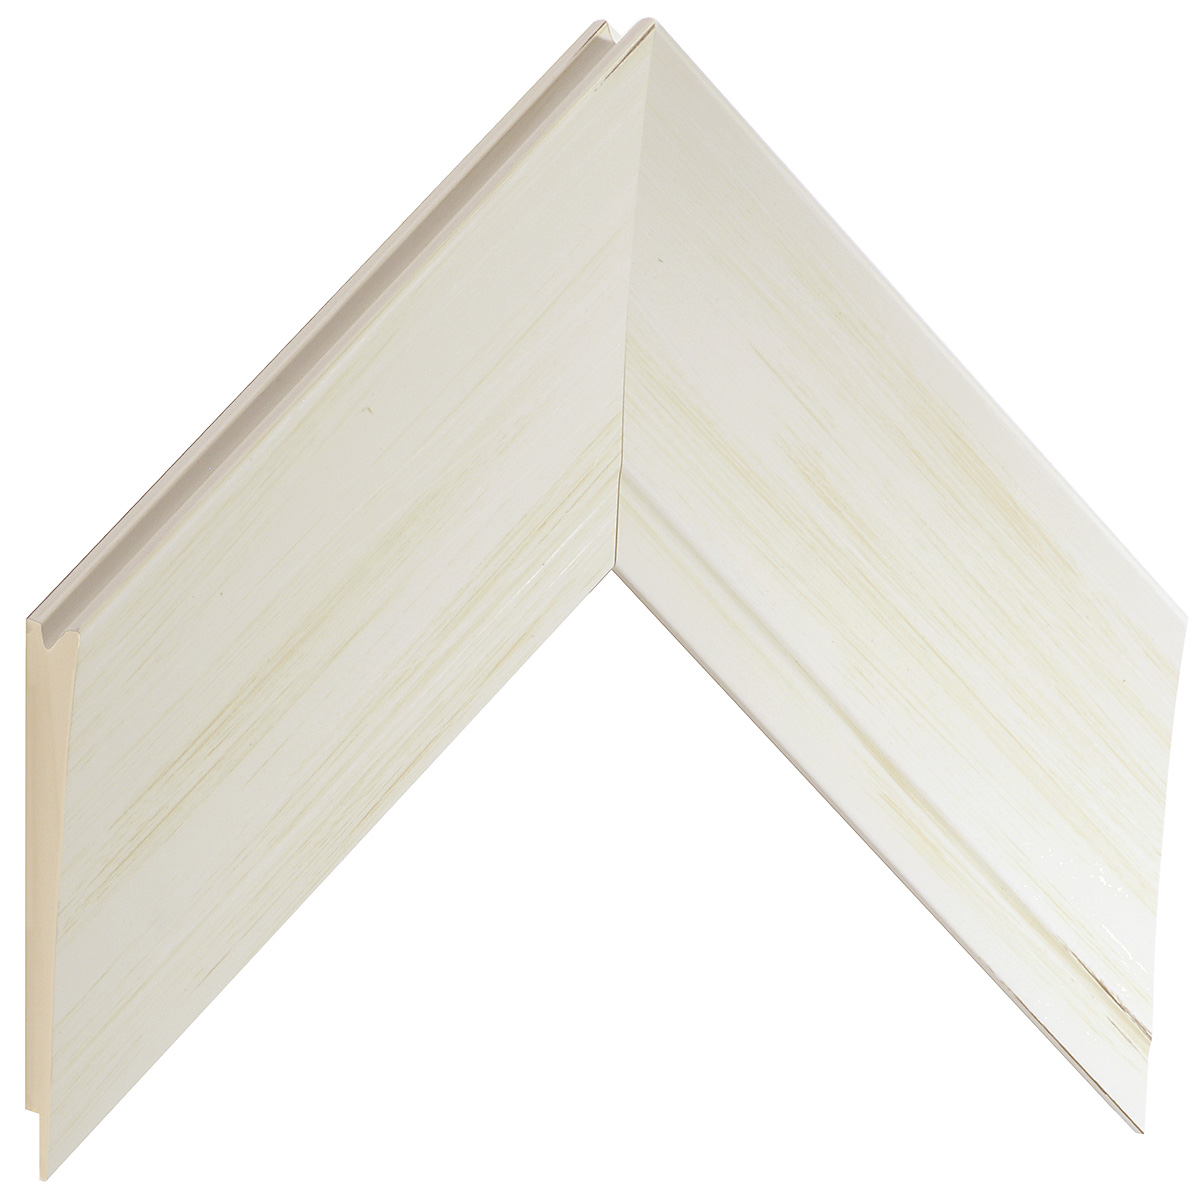 Moulding fir timber - Width 68mm - Cream finish